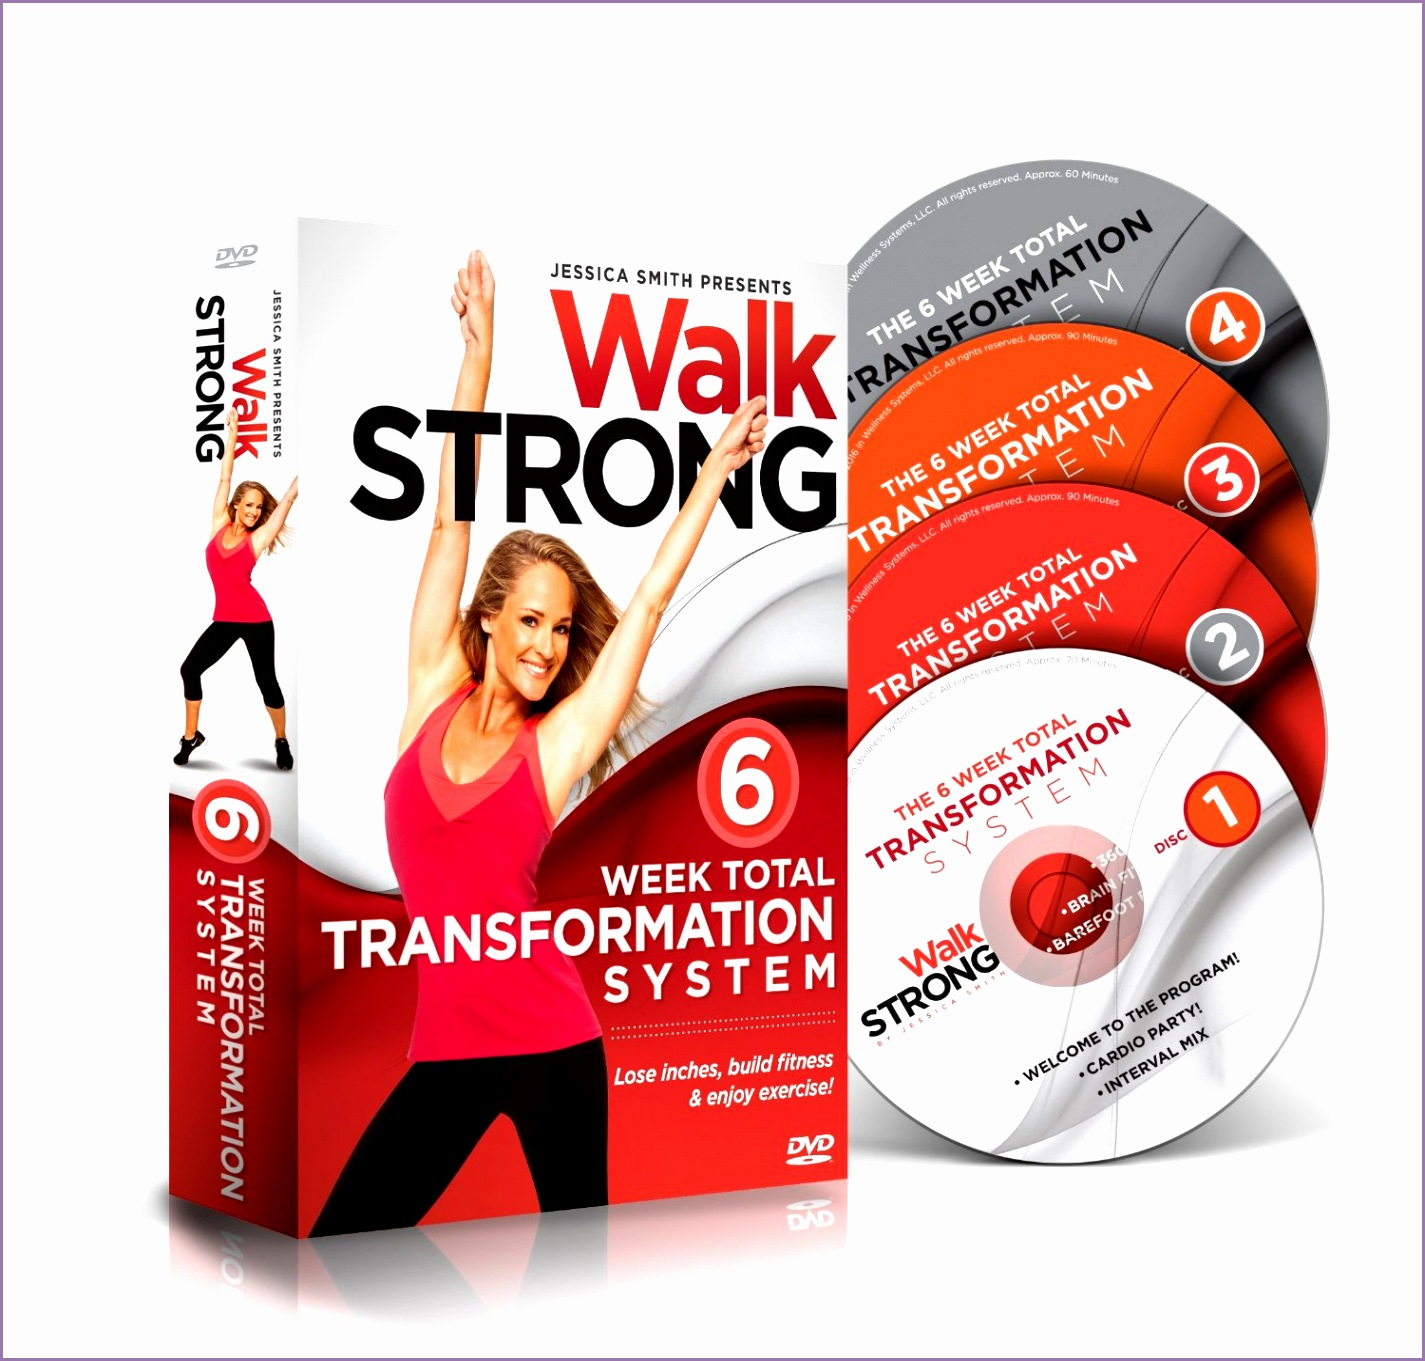 walk strong 6 week total transformation system by jessica smith new lose inches build fitness enjoy exercise